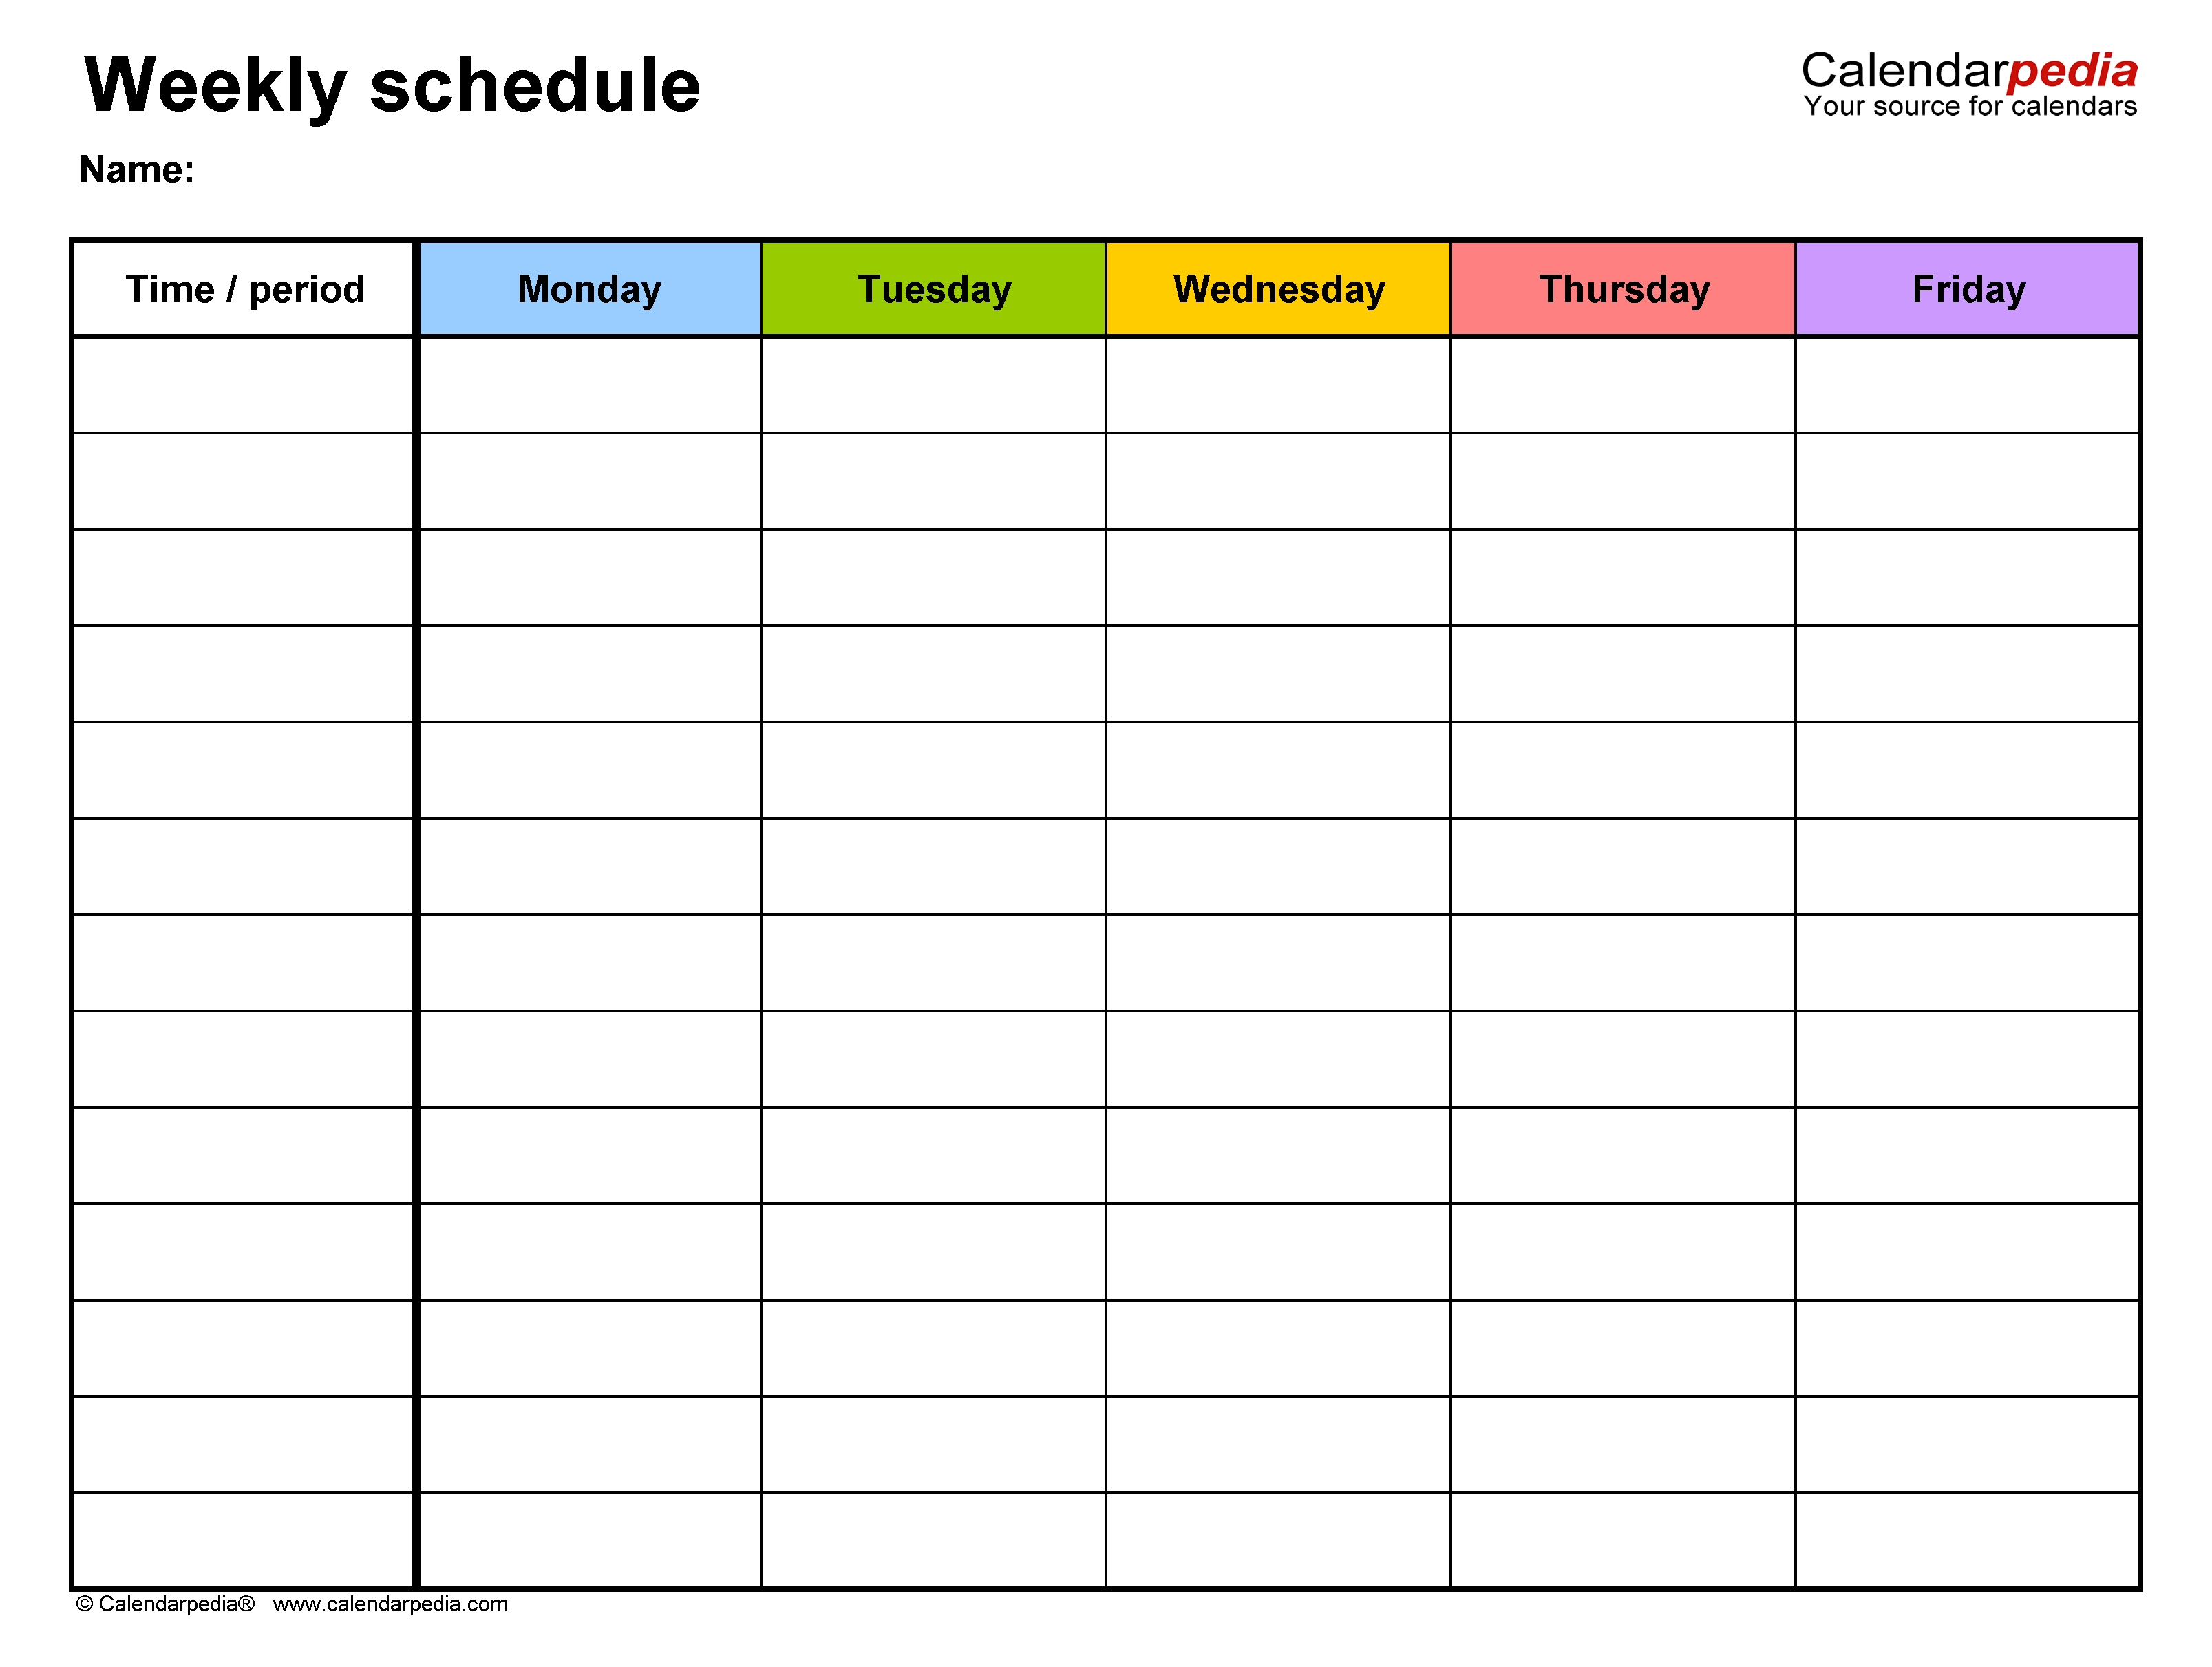 Free Weekly Schedule Templates For Word - 18 Templates with Monday Through Friday Appointment Calendar